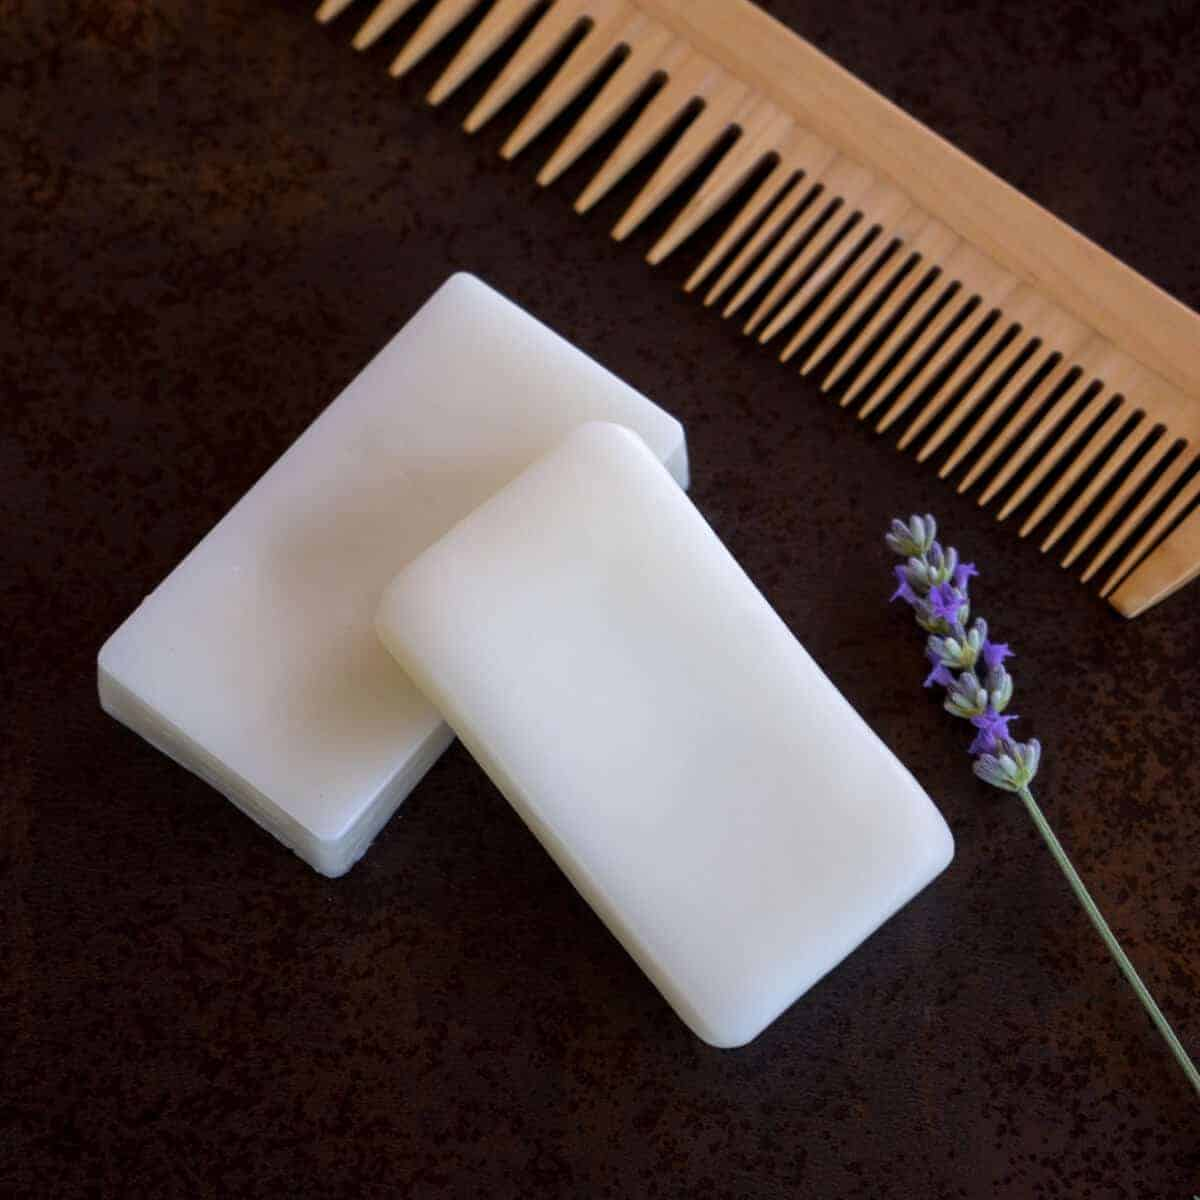 Two homemade conditioner bars on a counter with a sprig of lavender and a wooden comb